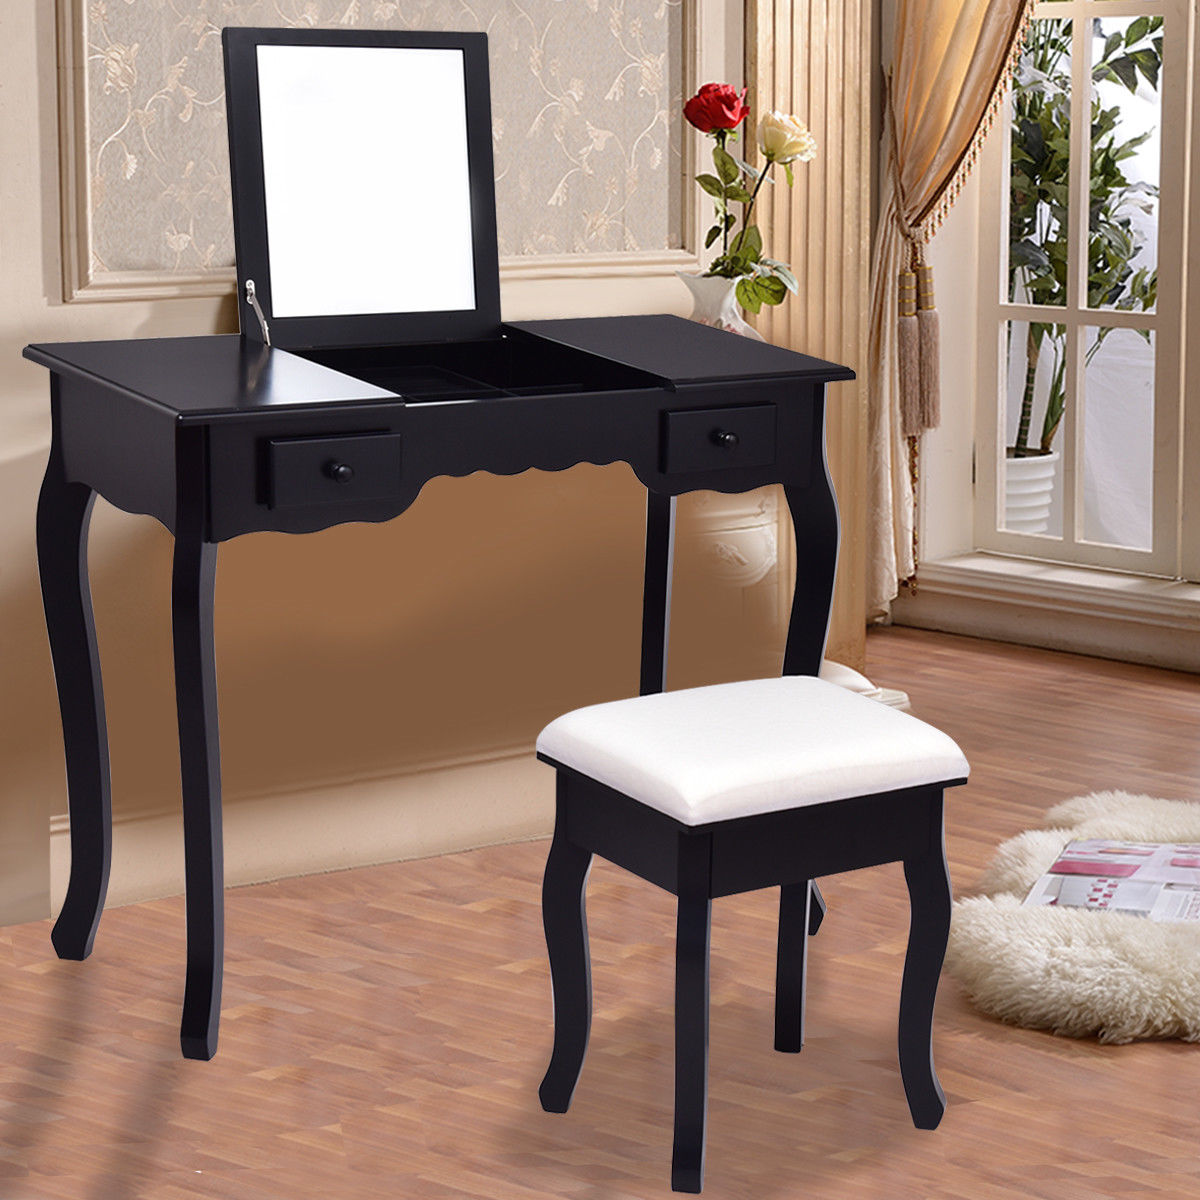 Giantex Modern Vanity Dressing Table Set Mirrored Bathroom Furniture With Stool Table Black Make Up Dresser Desk HW56231BK декор lord vanity quinta mirabilia grigio 20x56